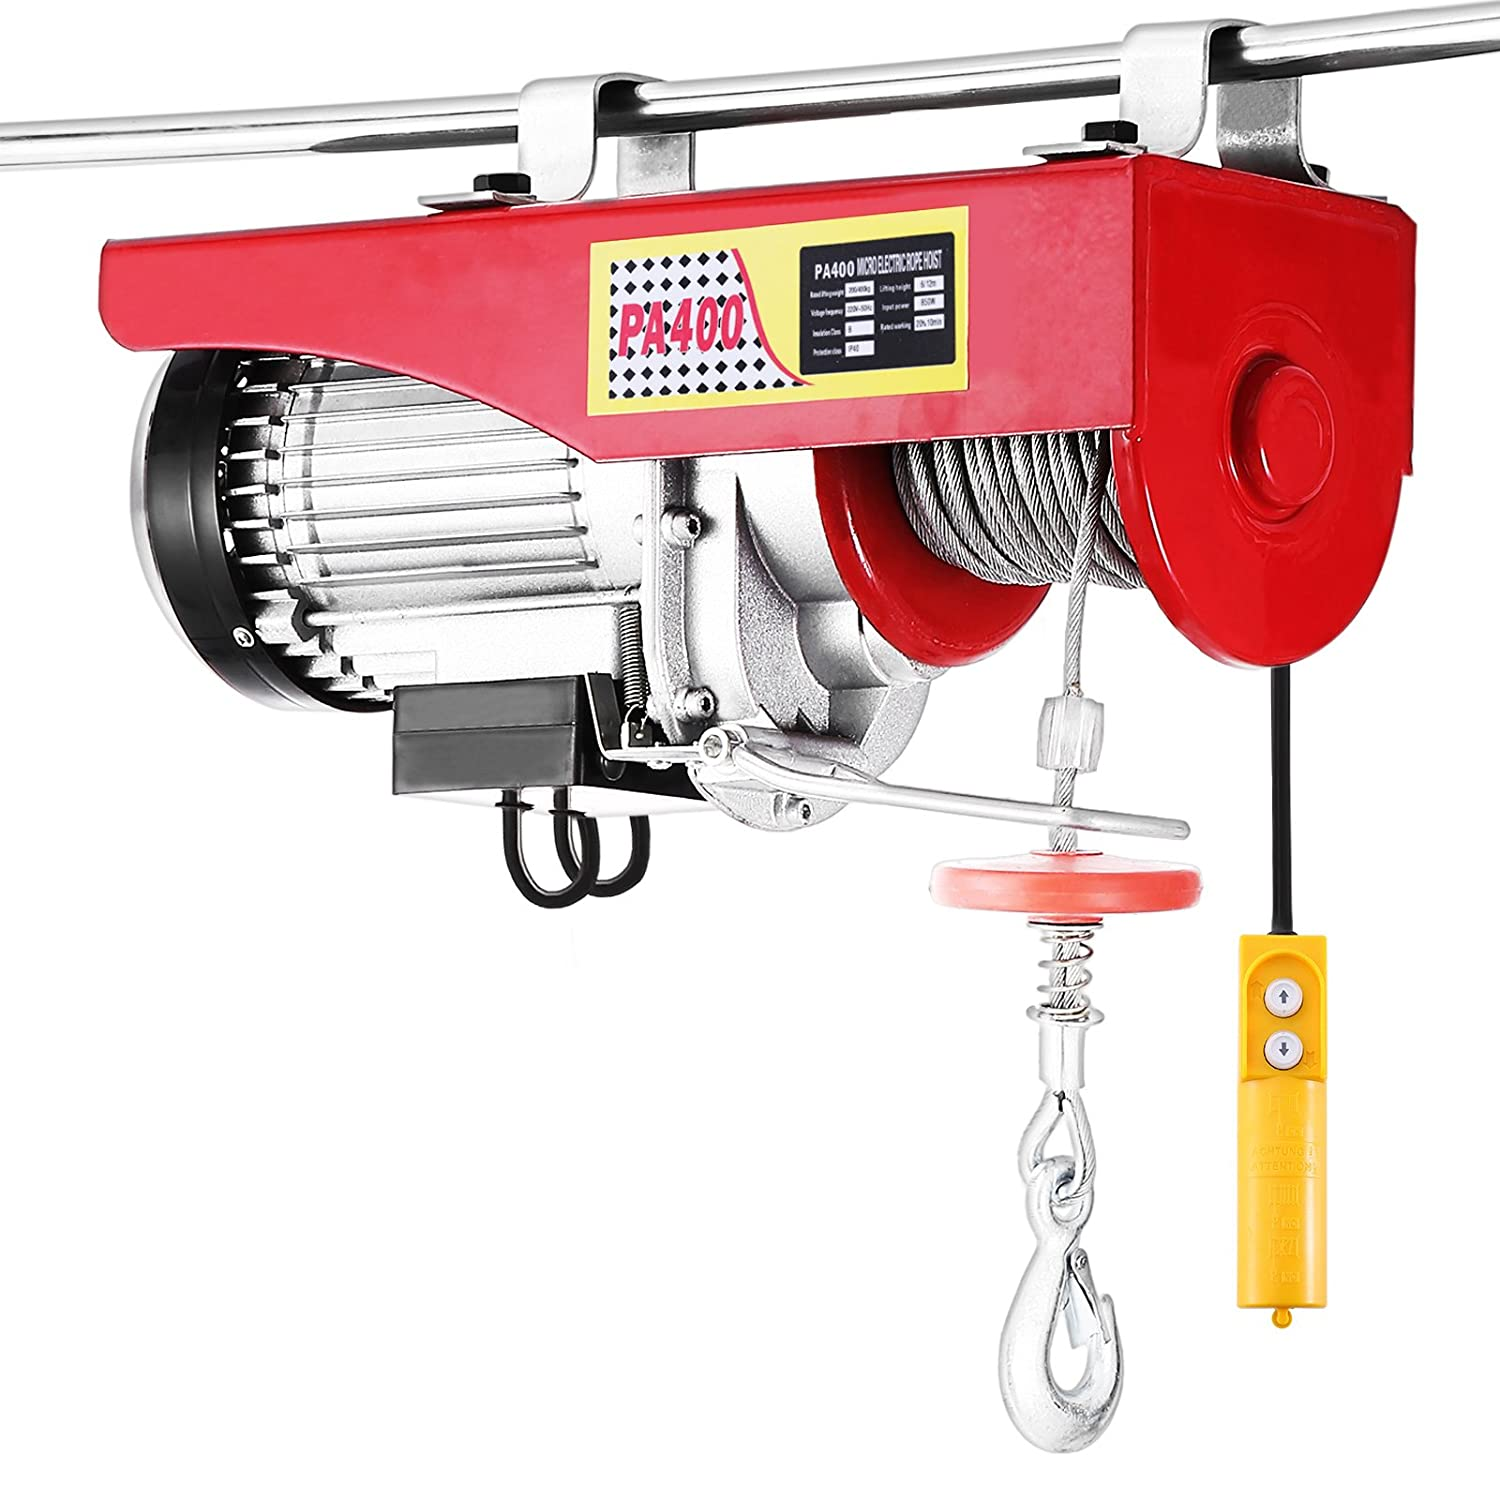 OrangeA Electric Hoist Lift 880LBS 400KG Overhead Electric Hoist 220V 12M Electric Wire Hoist Remote Control Garage Auto Shop Overhead Lift (400KG)